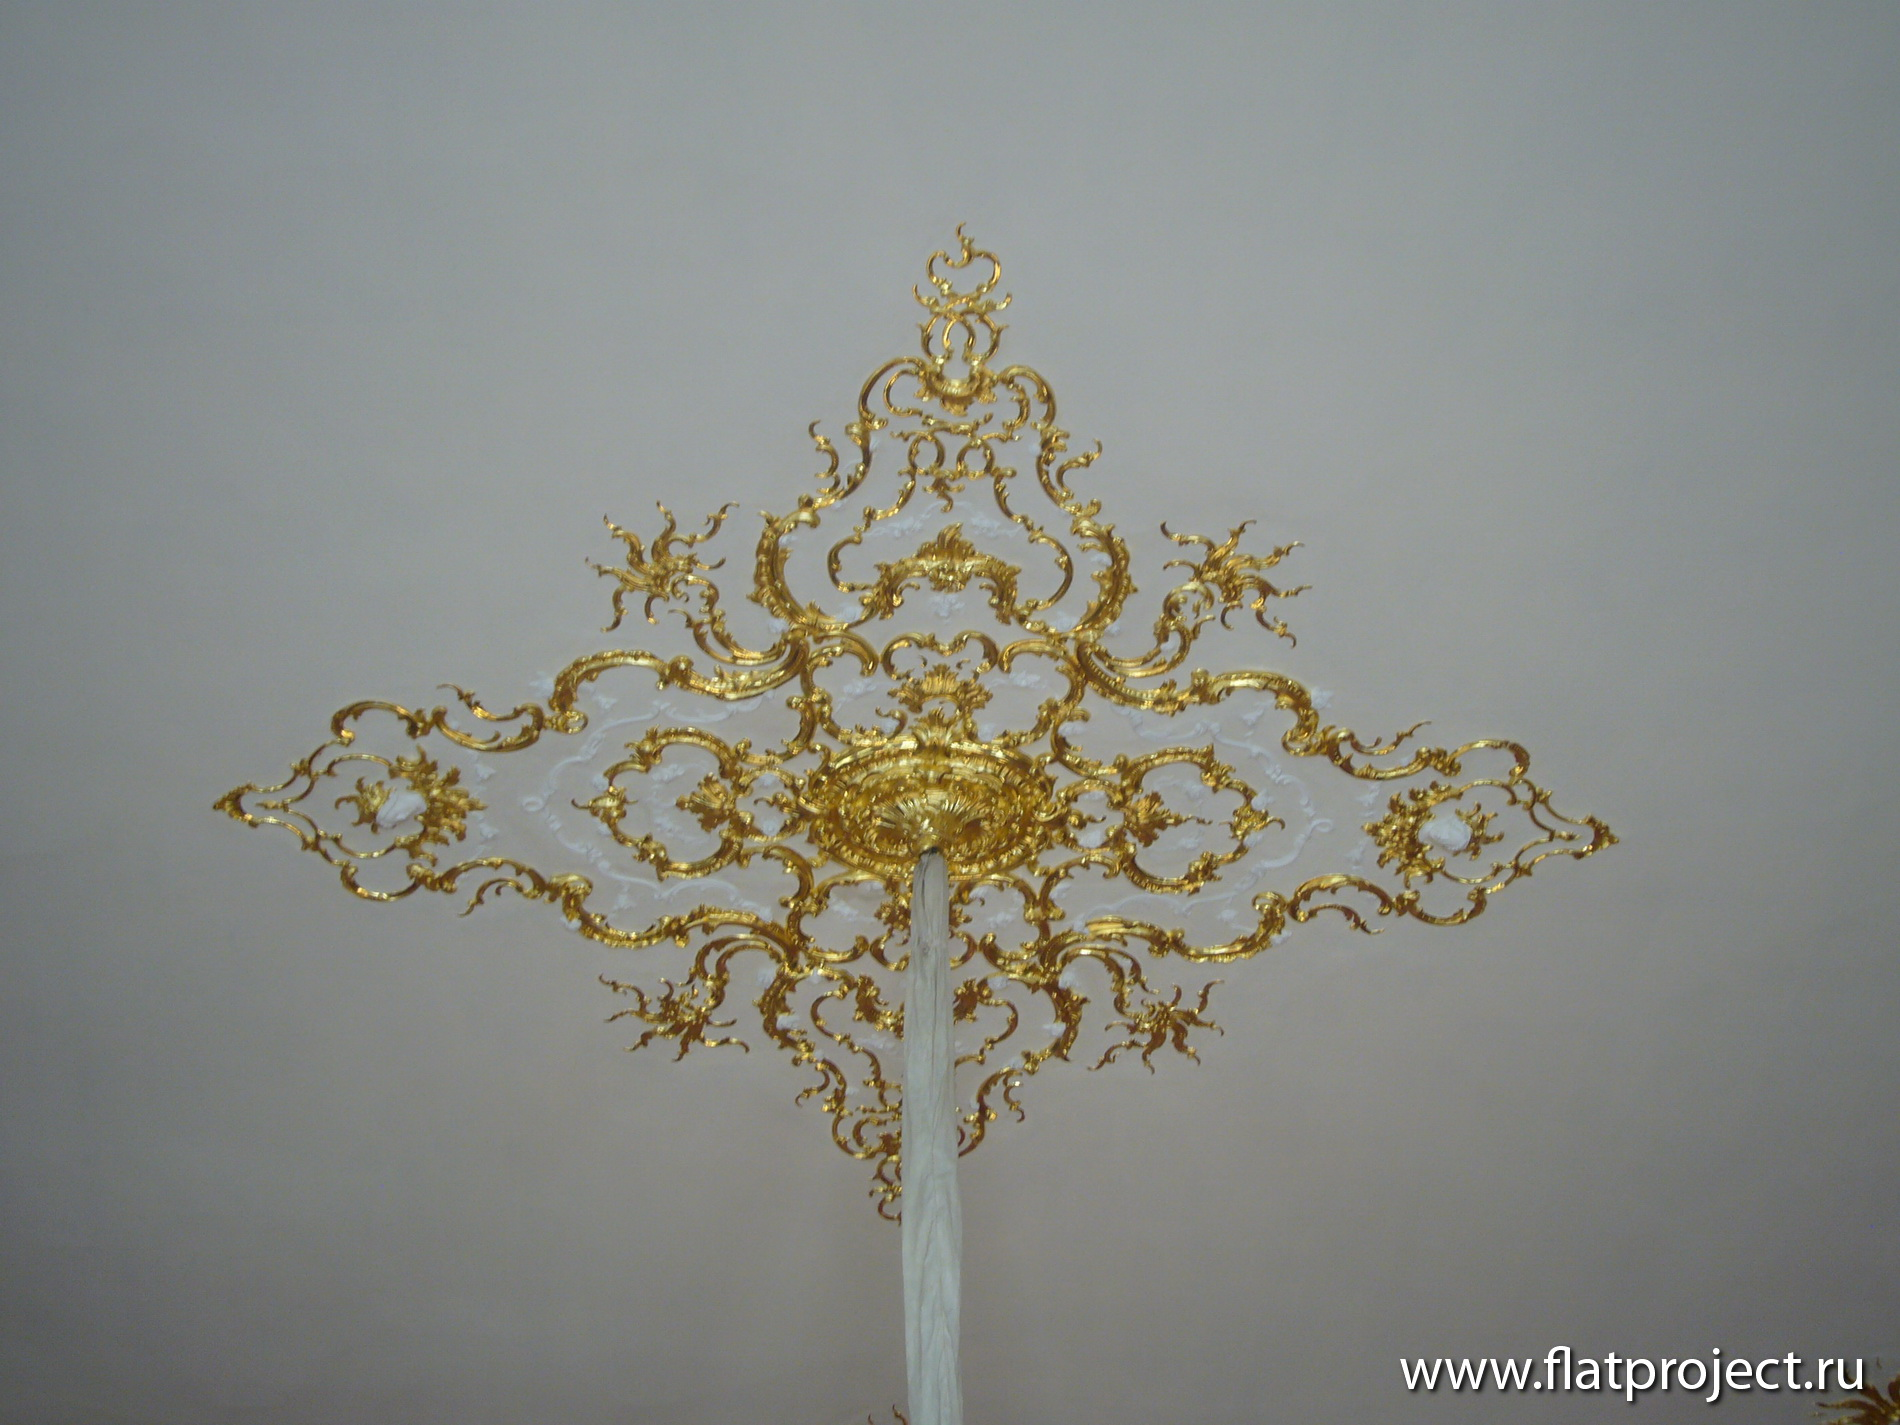 The State Russian museum interiors – photo 42